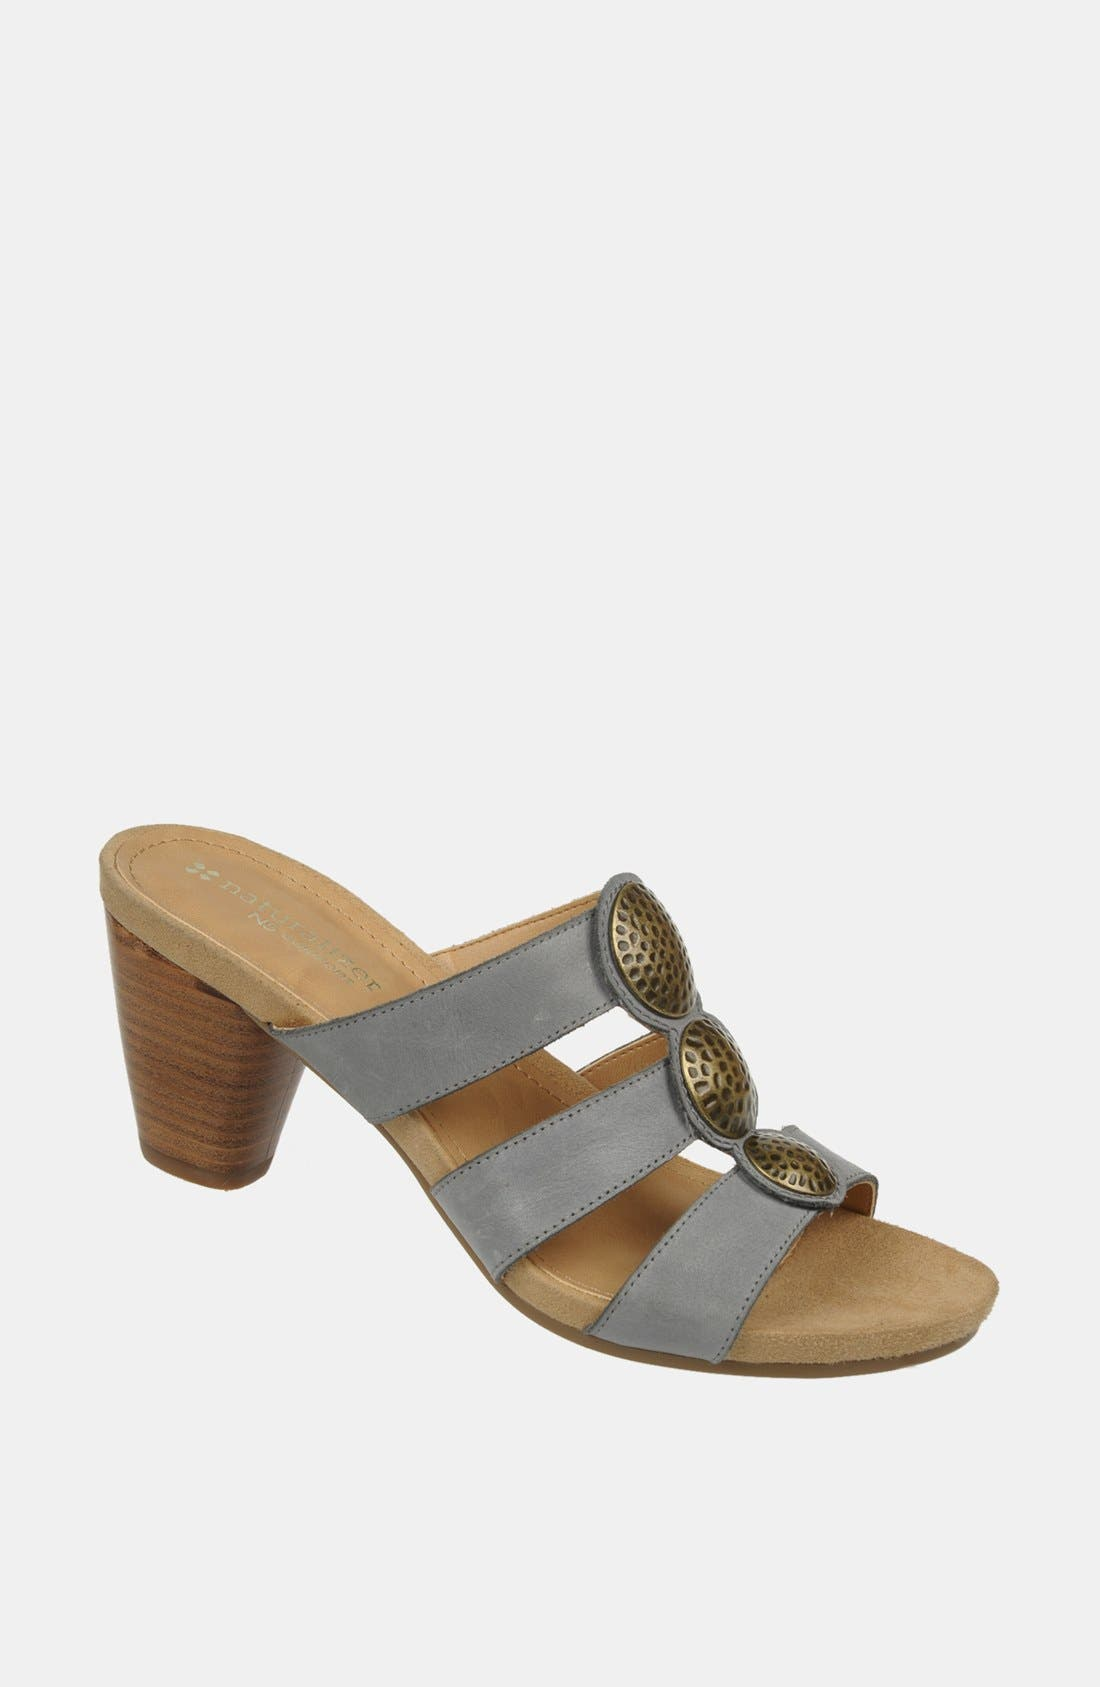 Main Image - Naturalizer 'Egypt' Sandal